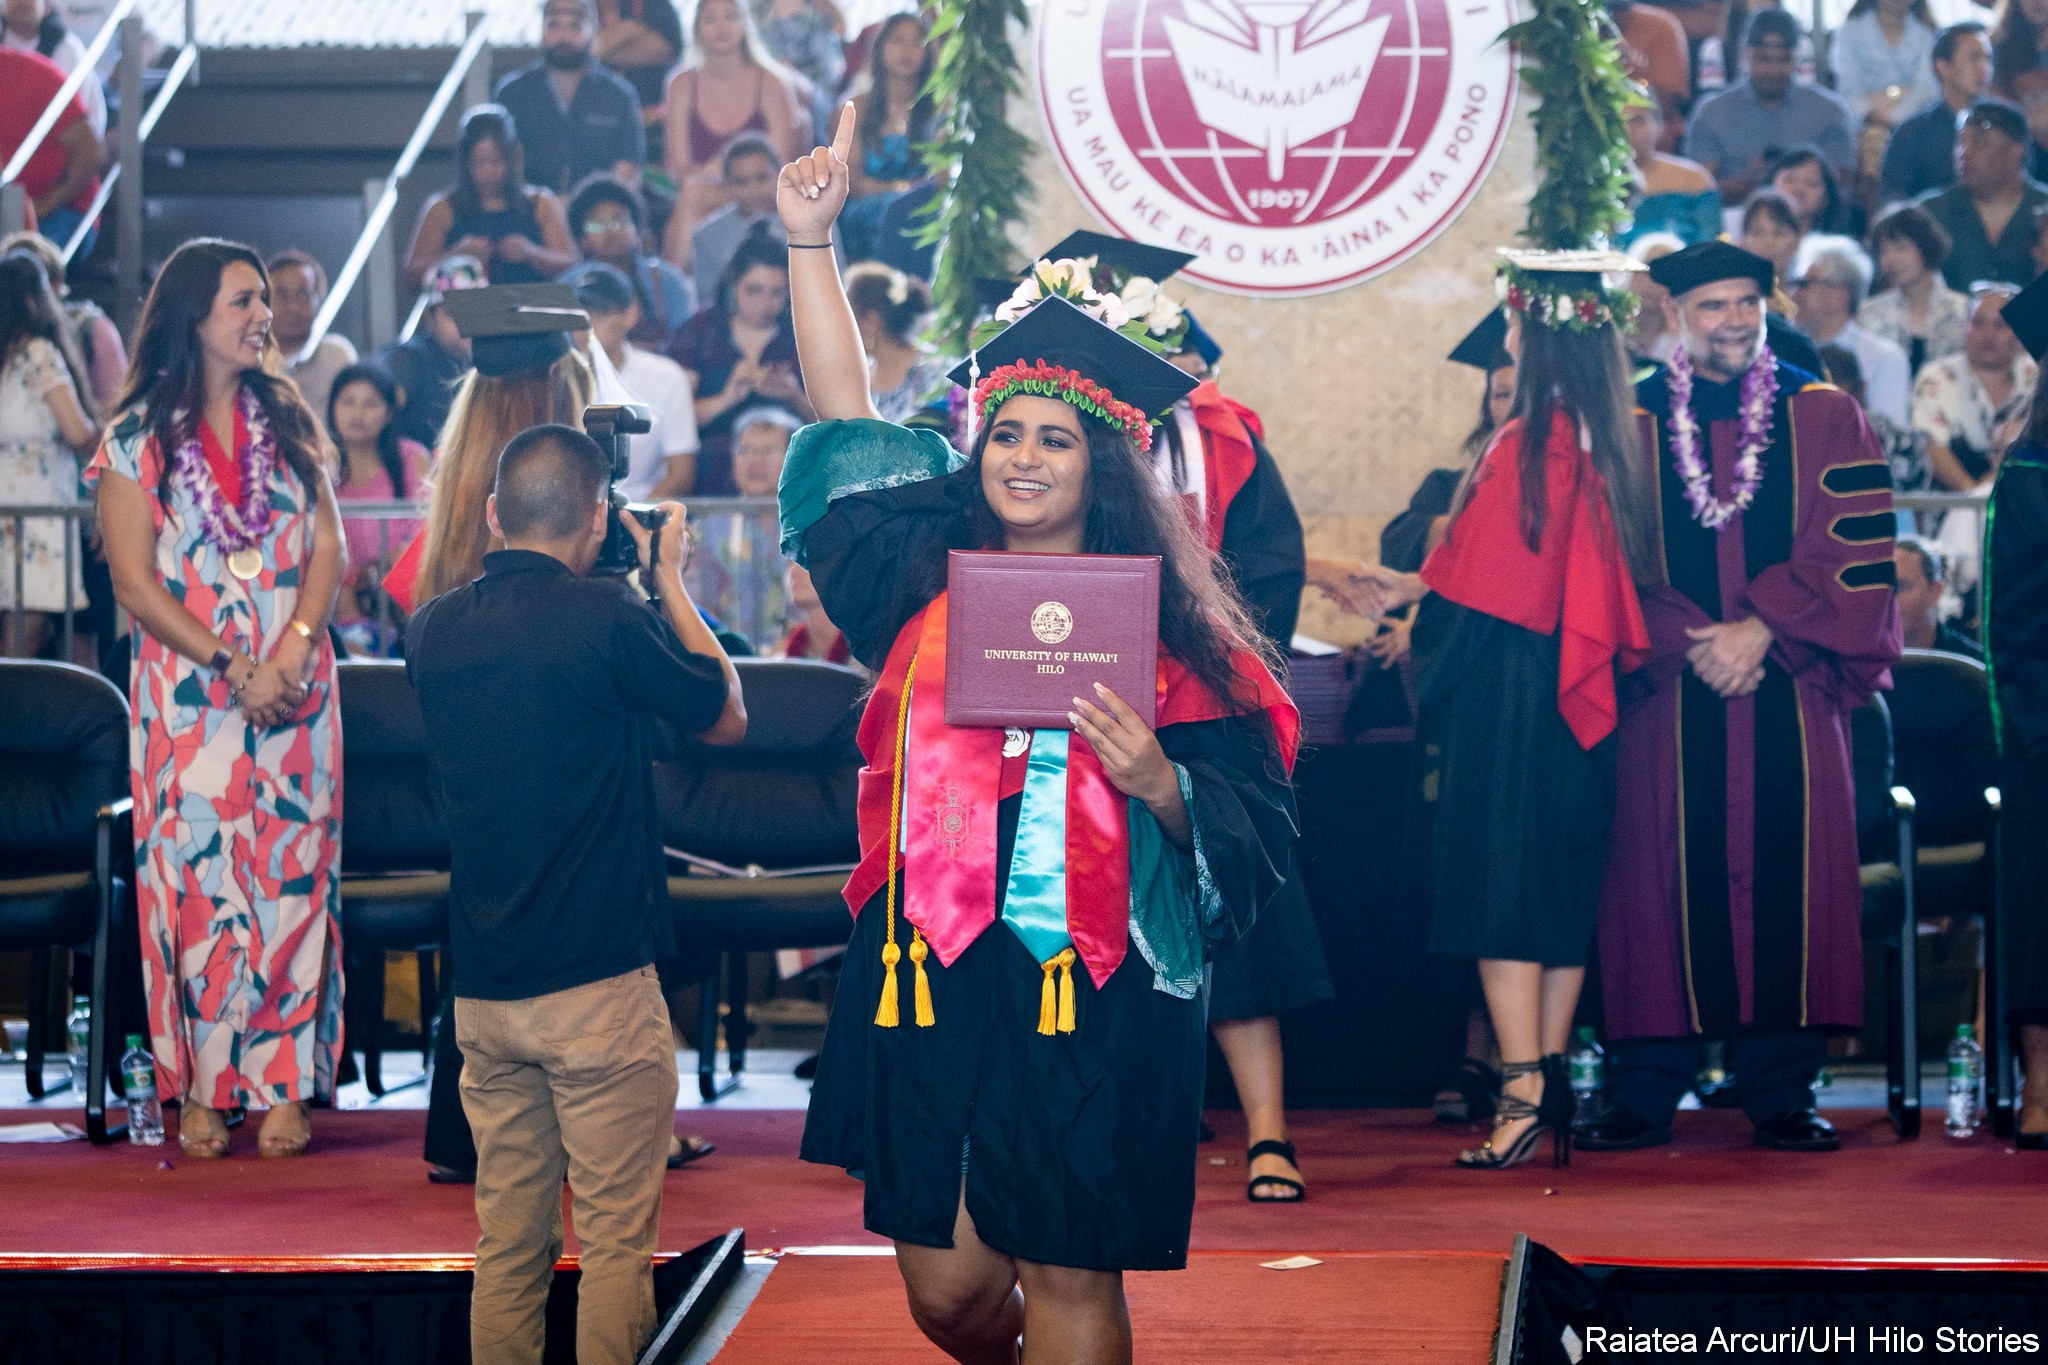 Female graduate signaling audience with a #1 from right hand, holds diploma in left hand as she is leaving dais.